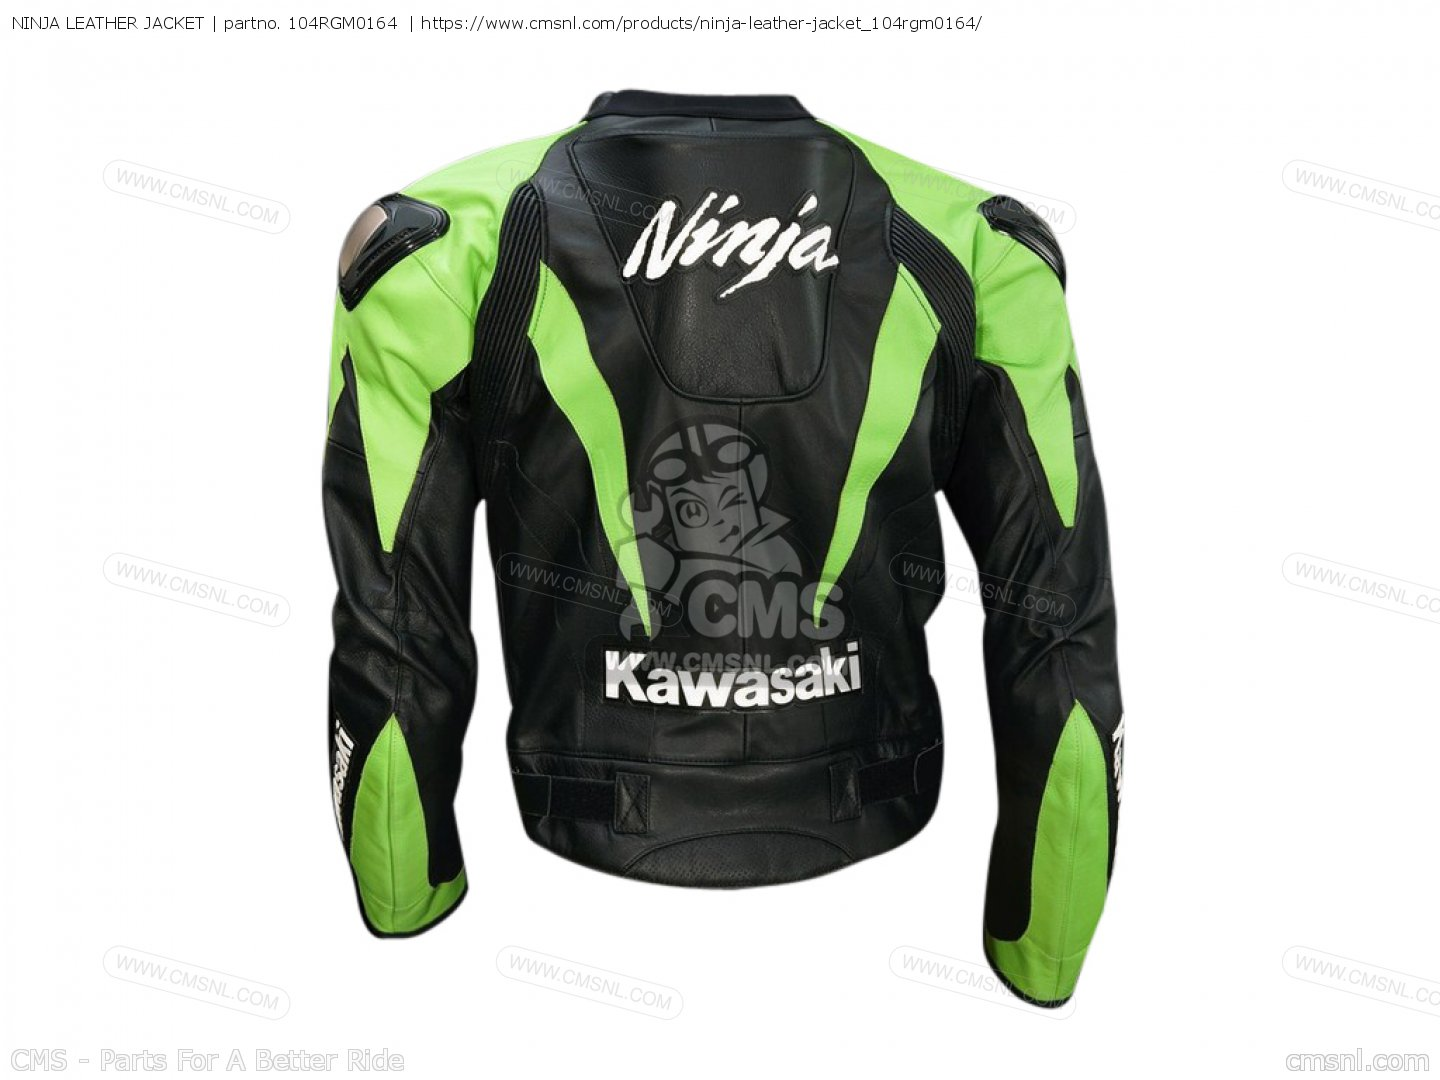 Kawasaki Ninja Riding Jacket